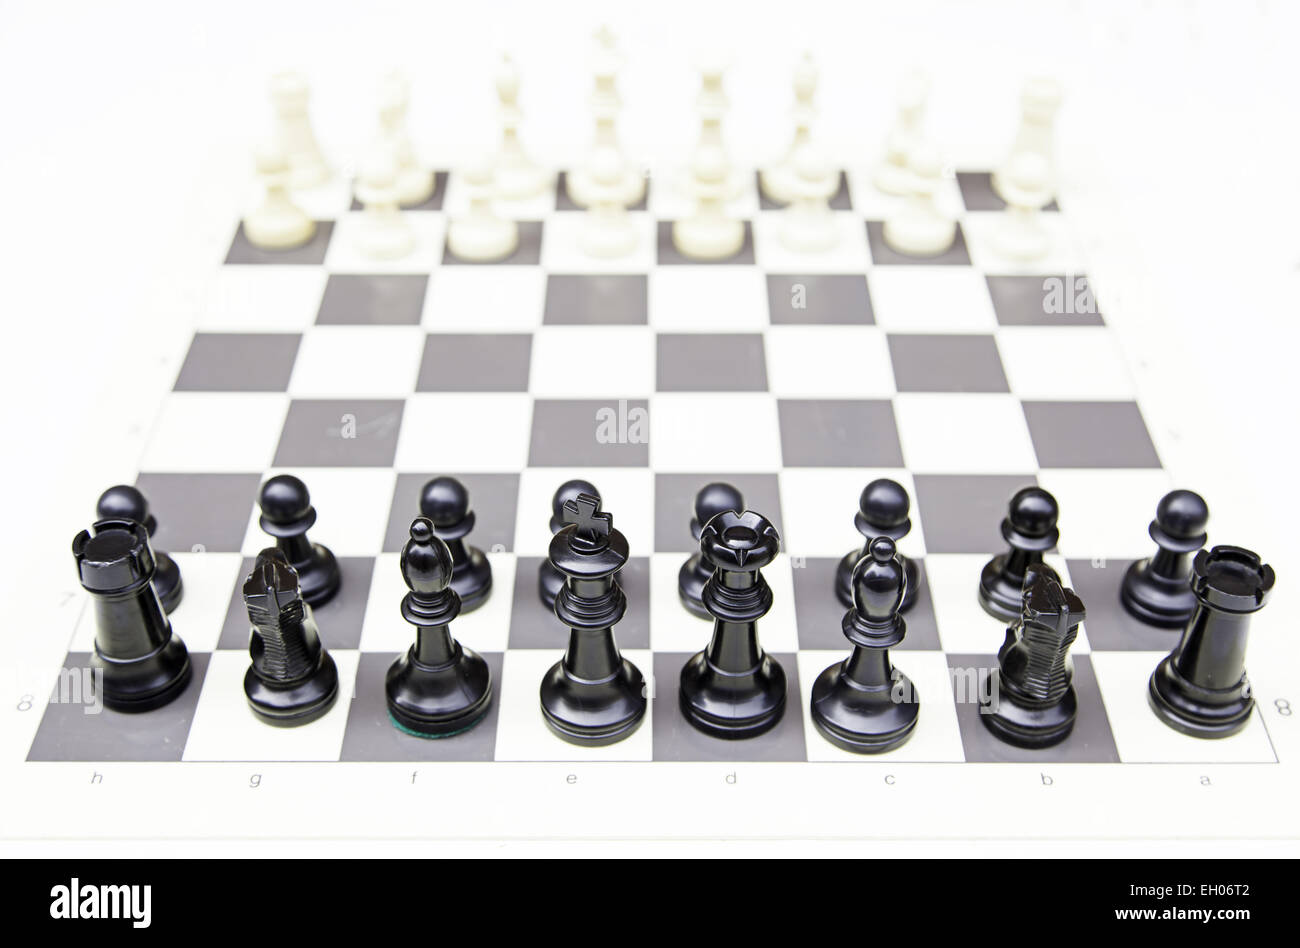 Chessboards, detailed intelligence game - Stock Image